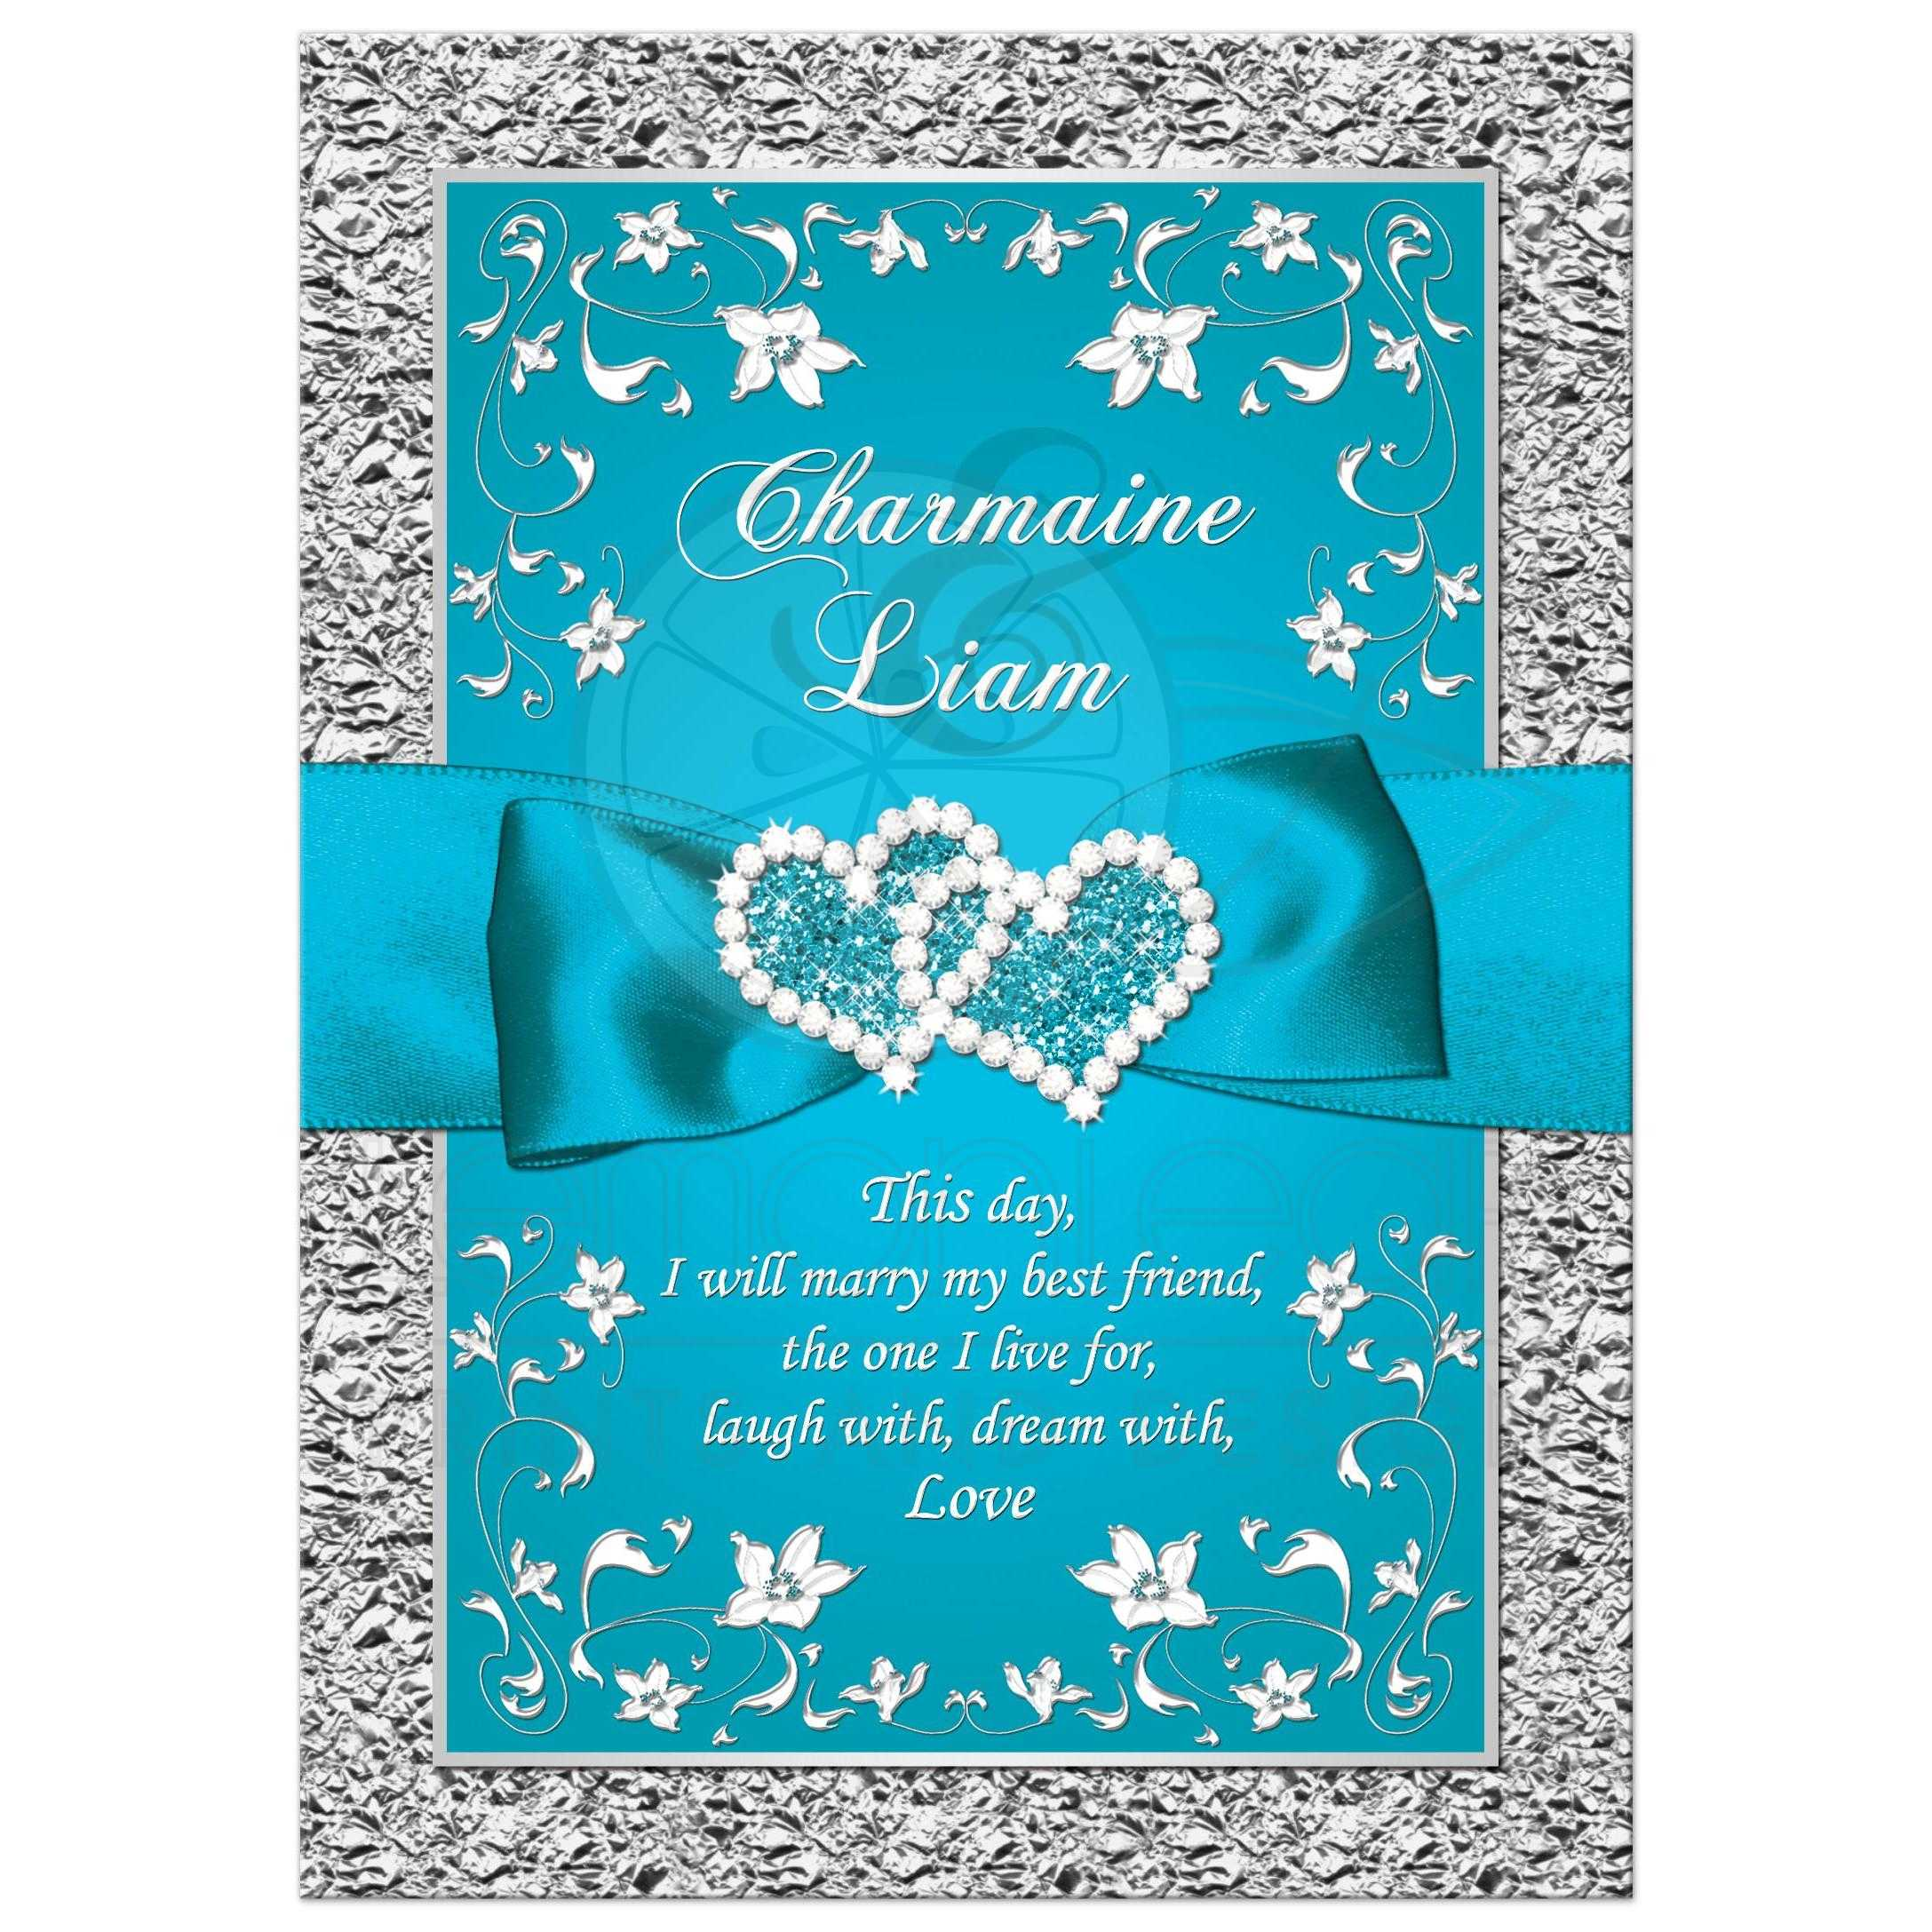 Charming Turquoise Blue And Silver Gray Floral Wedding Invite With Teal Ribbon, Bow,  And Glittery ...